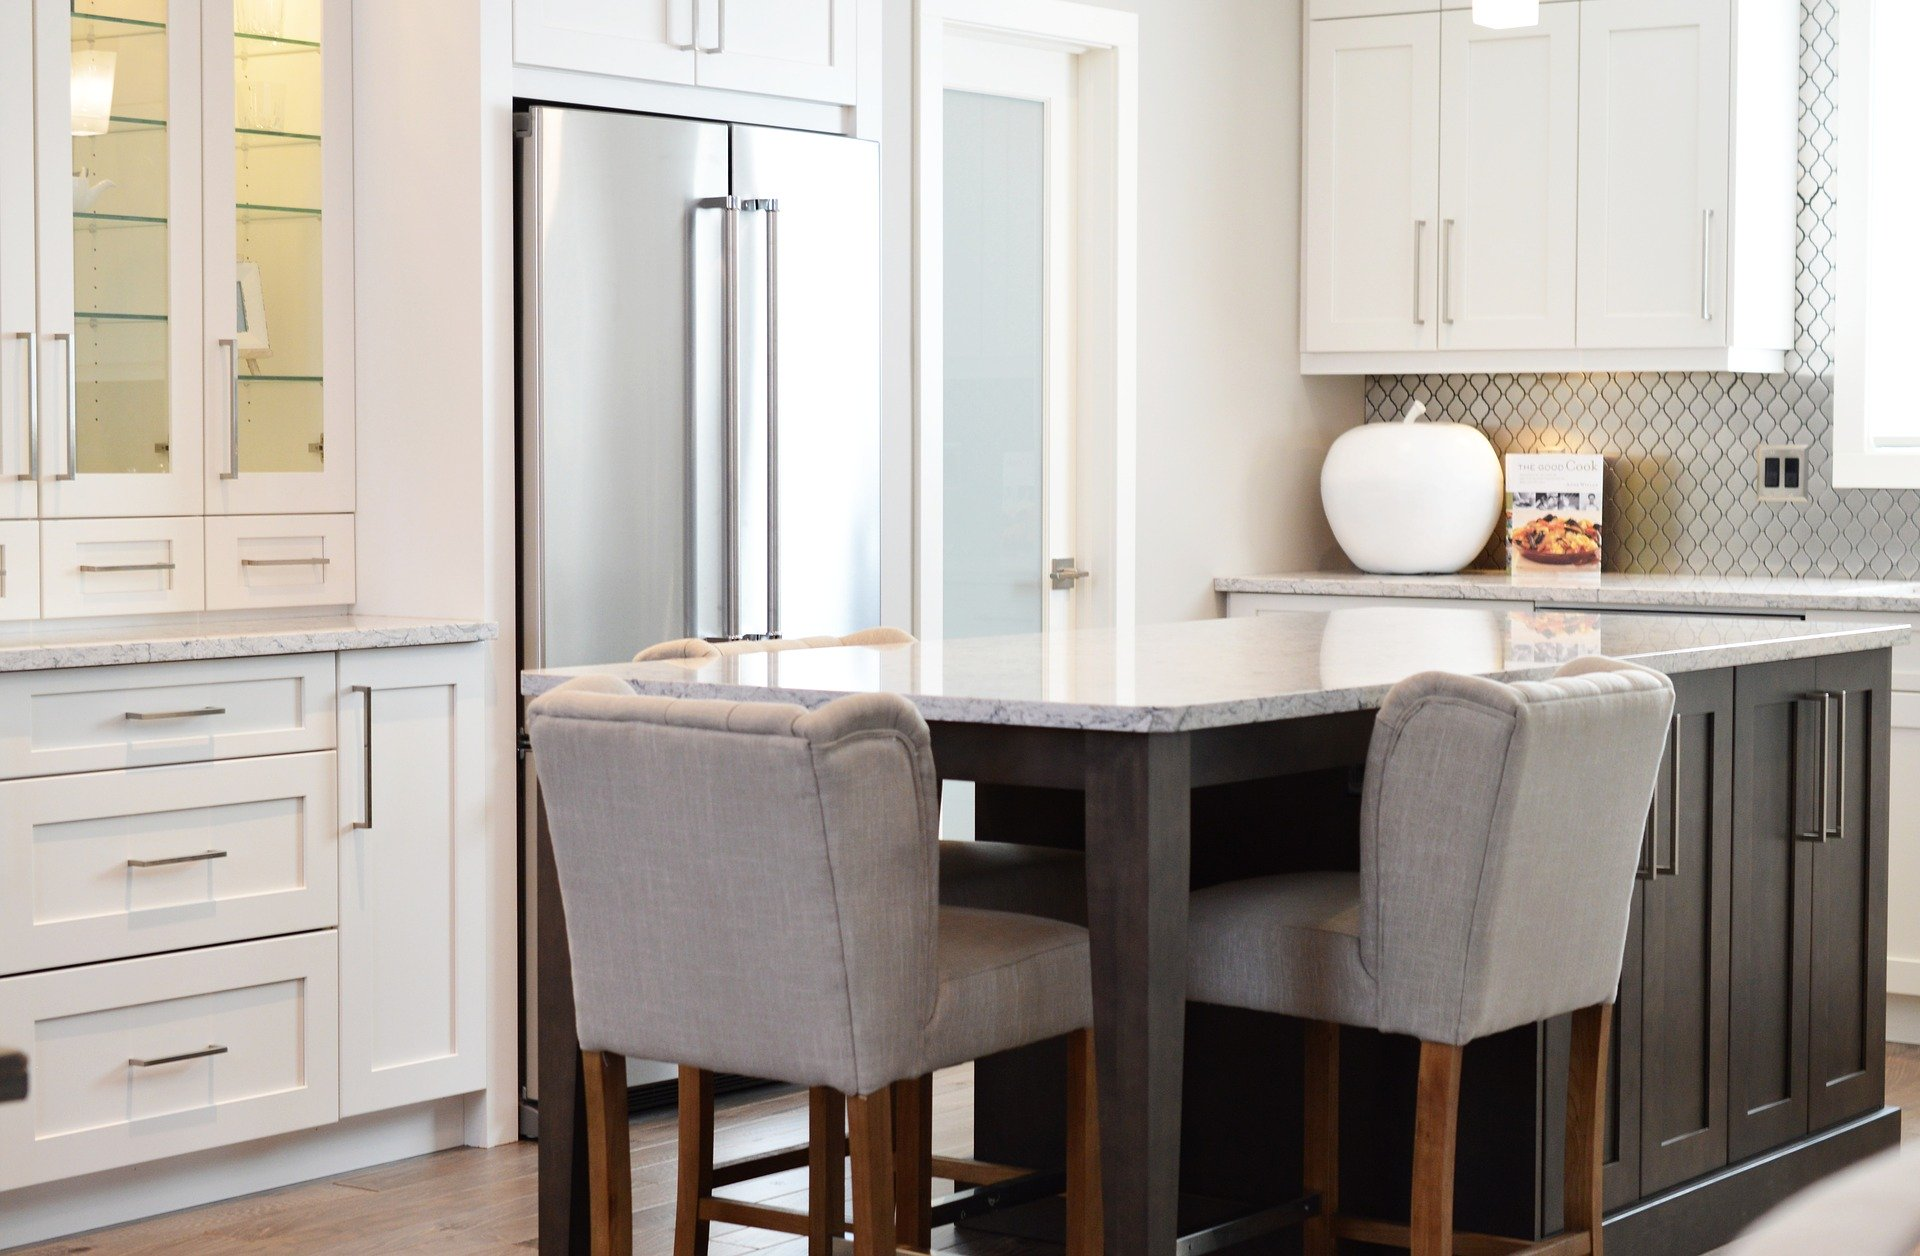 How to renovate your kitchen without blowing the budget